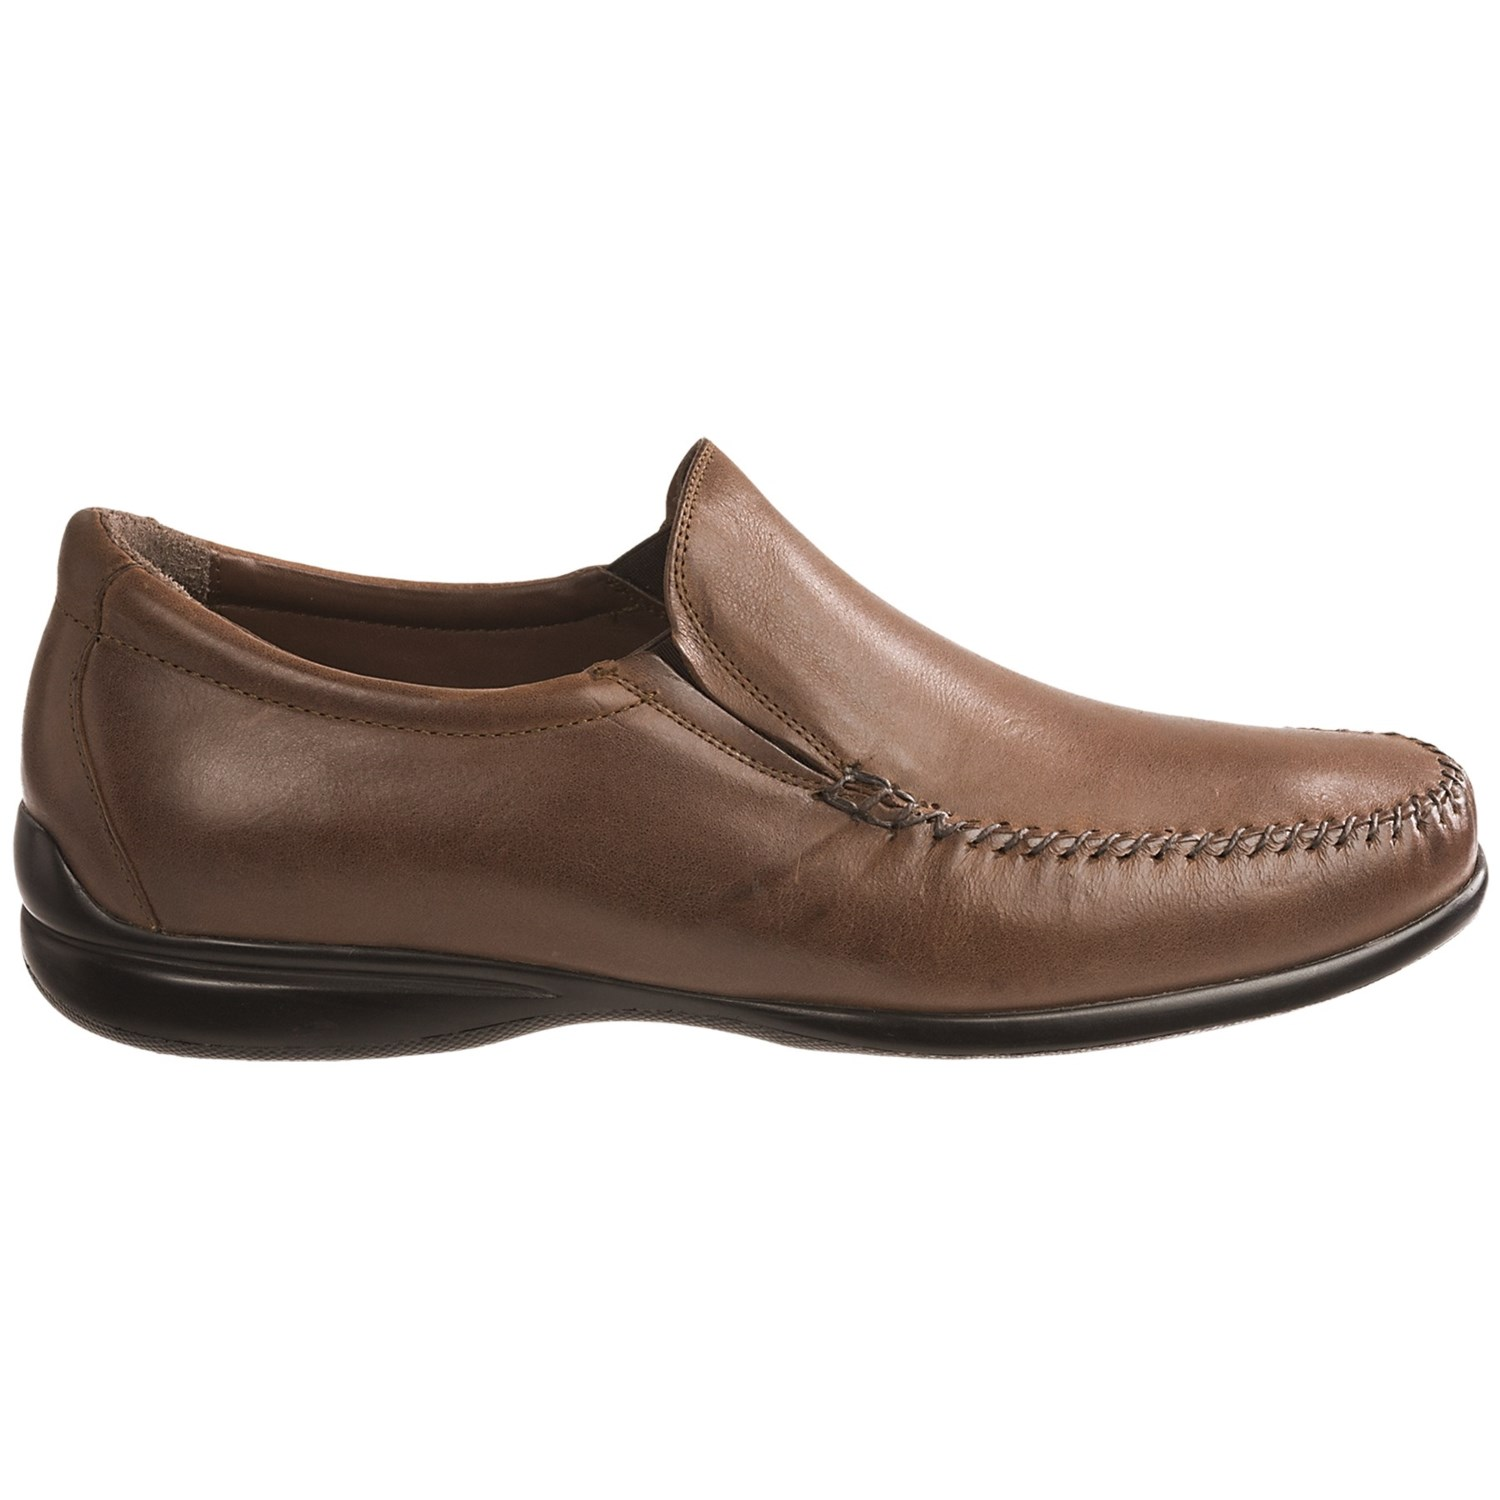 Neil M Tuscany Shoes (For Men) 6247A